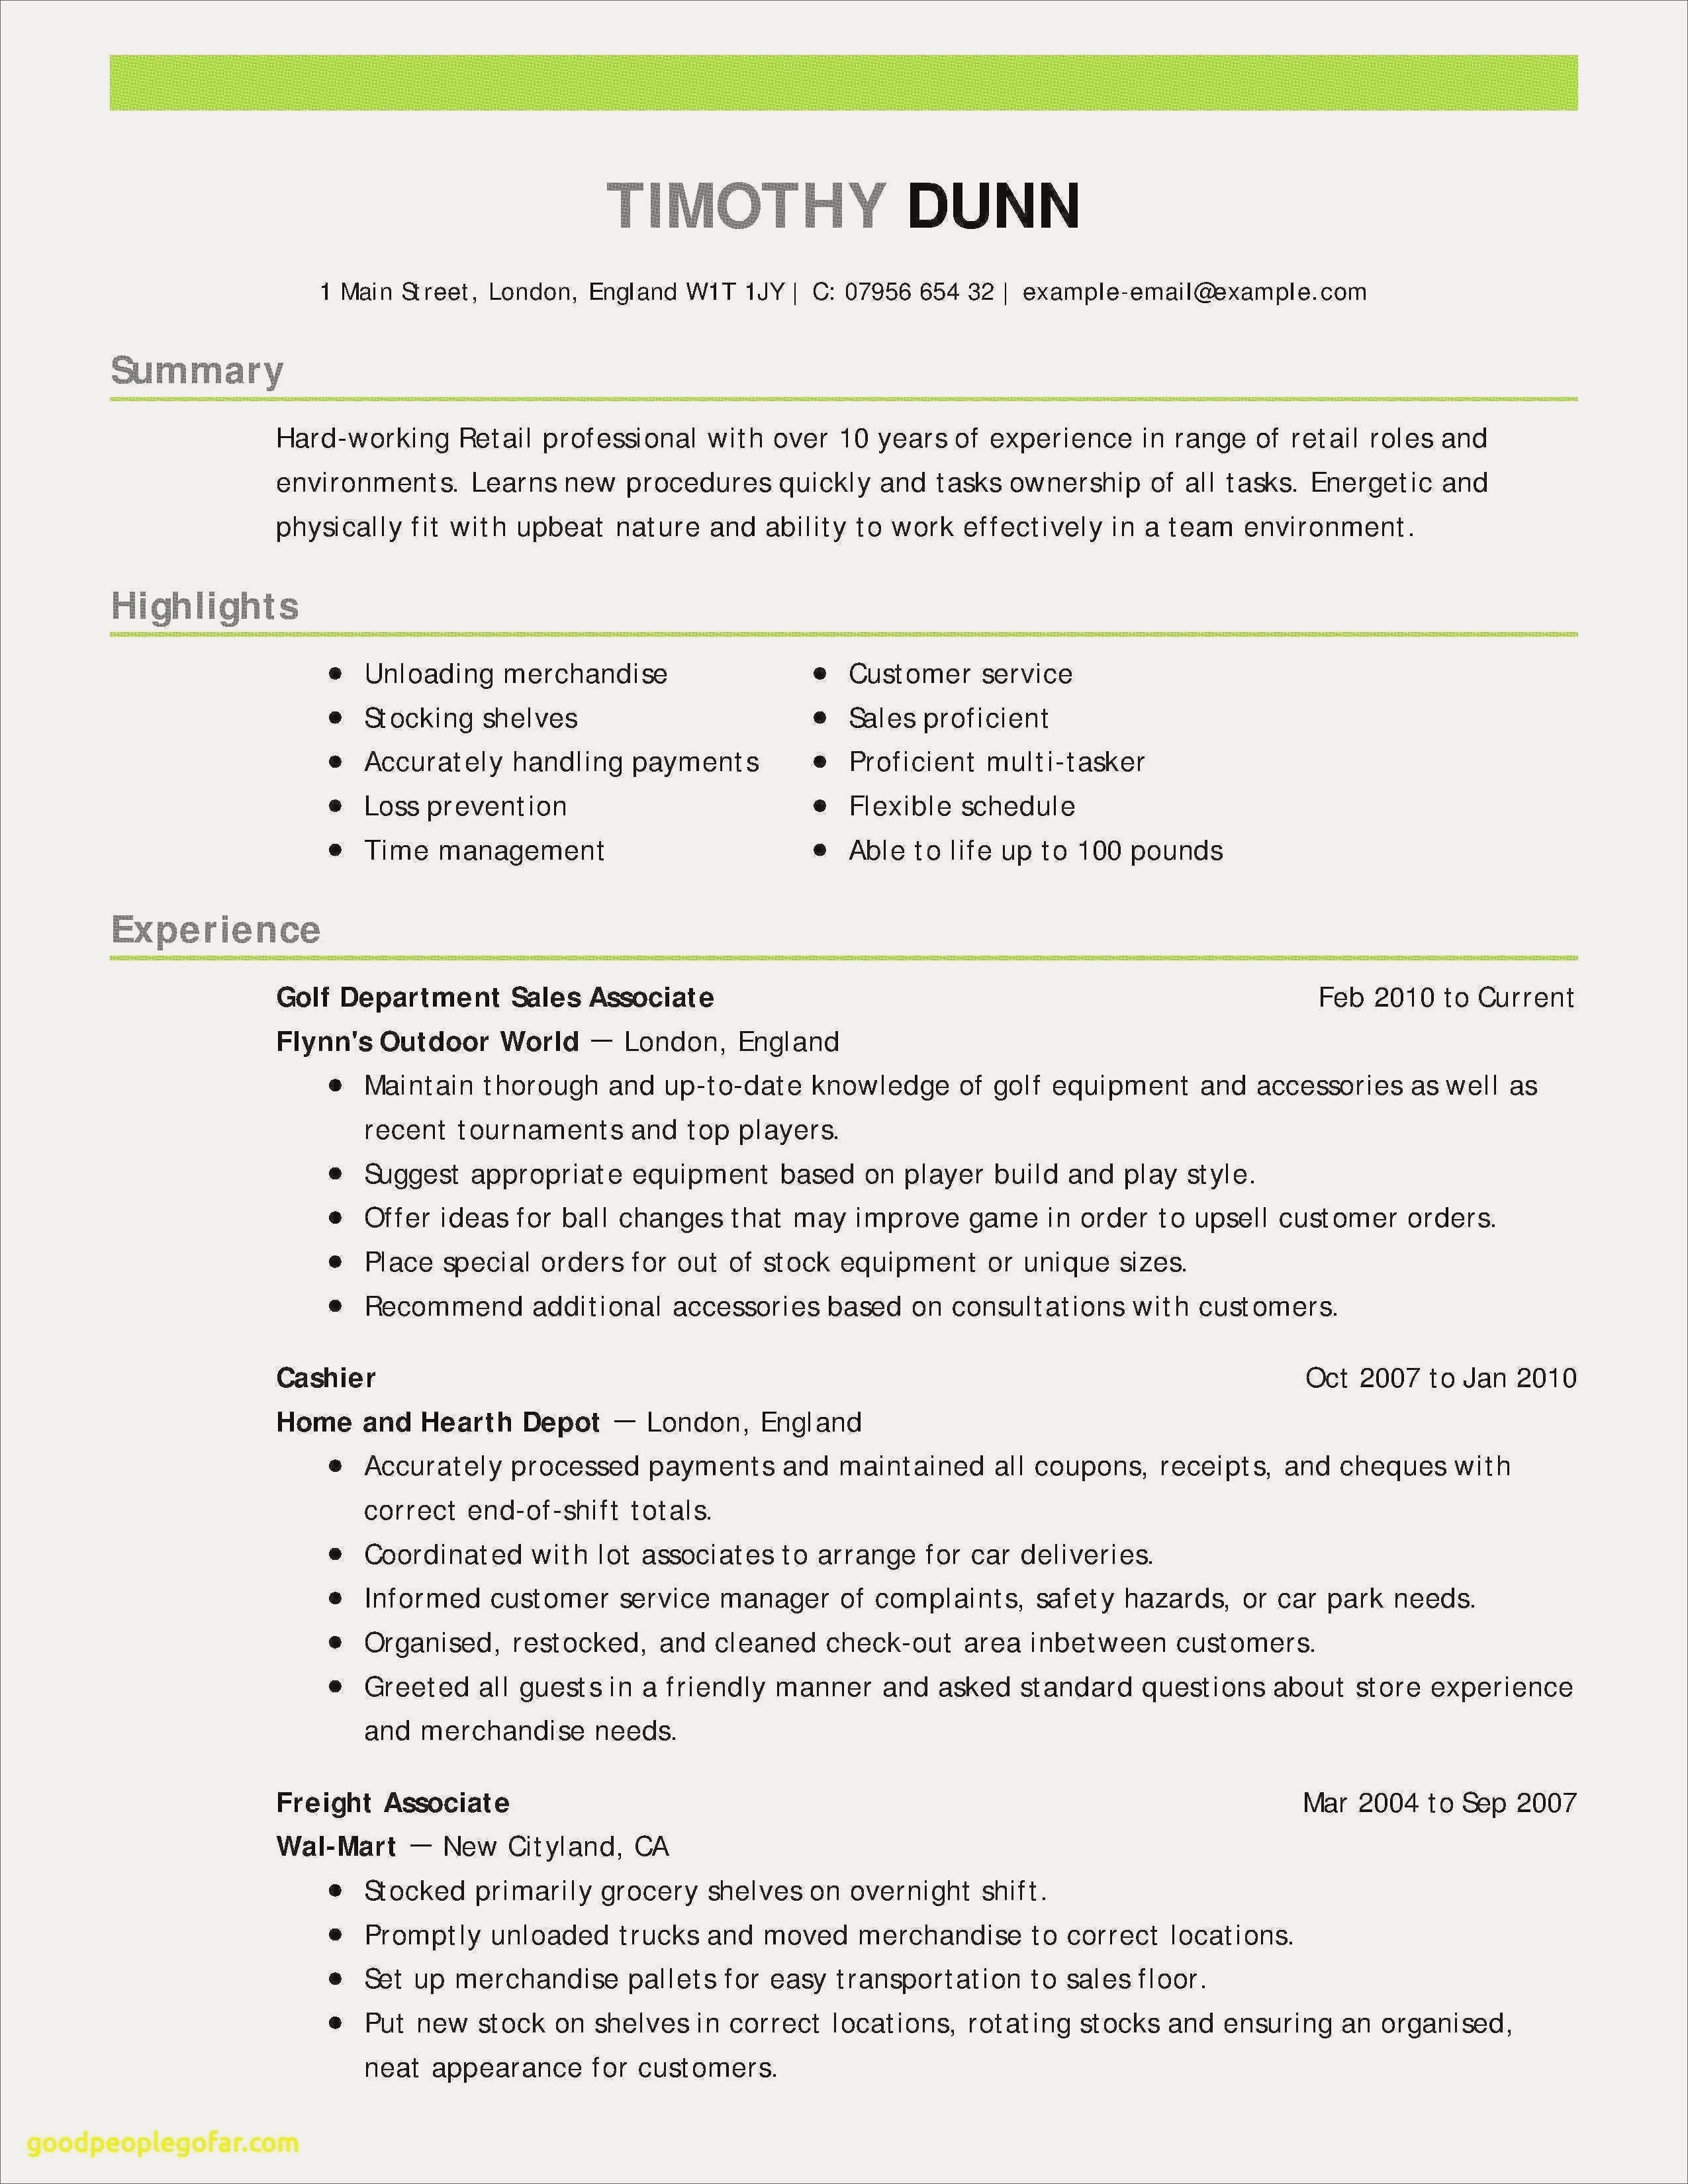 Retail Resume Summary - Resume Skills Examples for Customer Service Best Customer Service